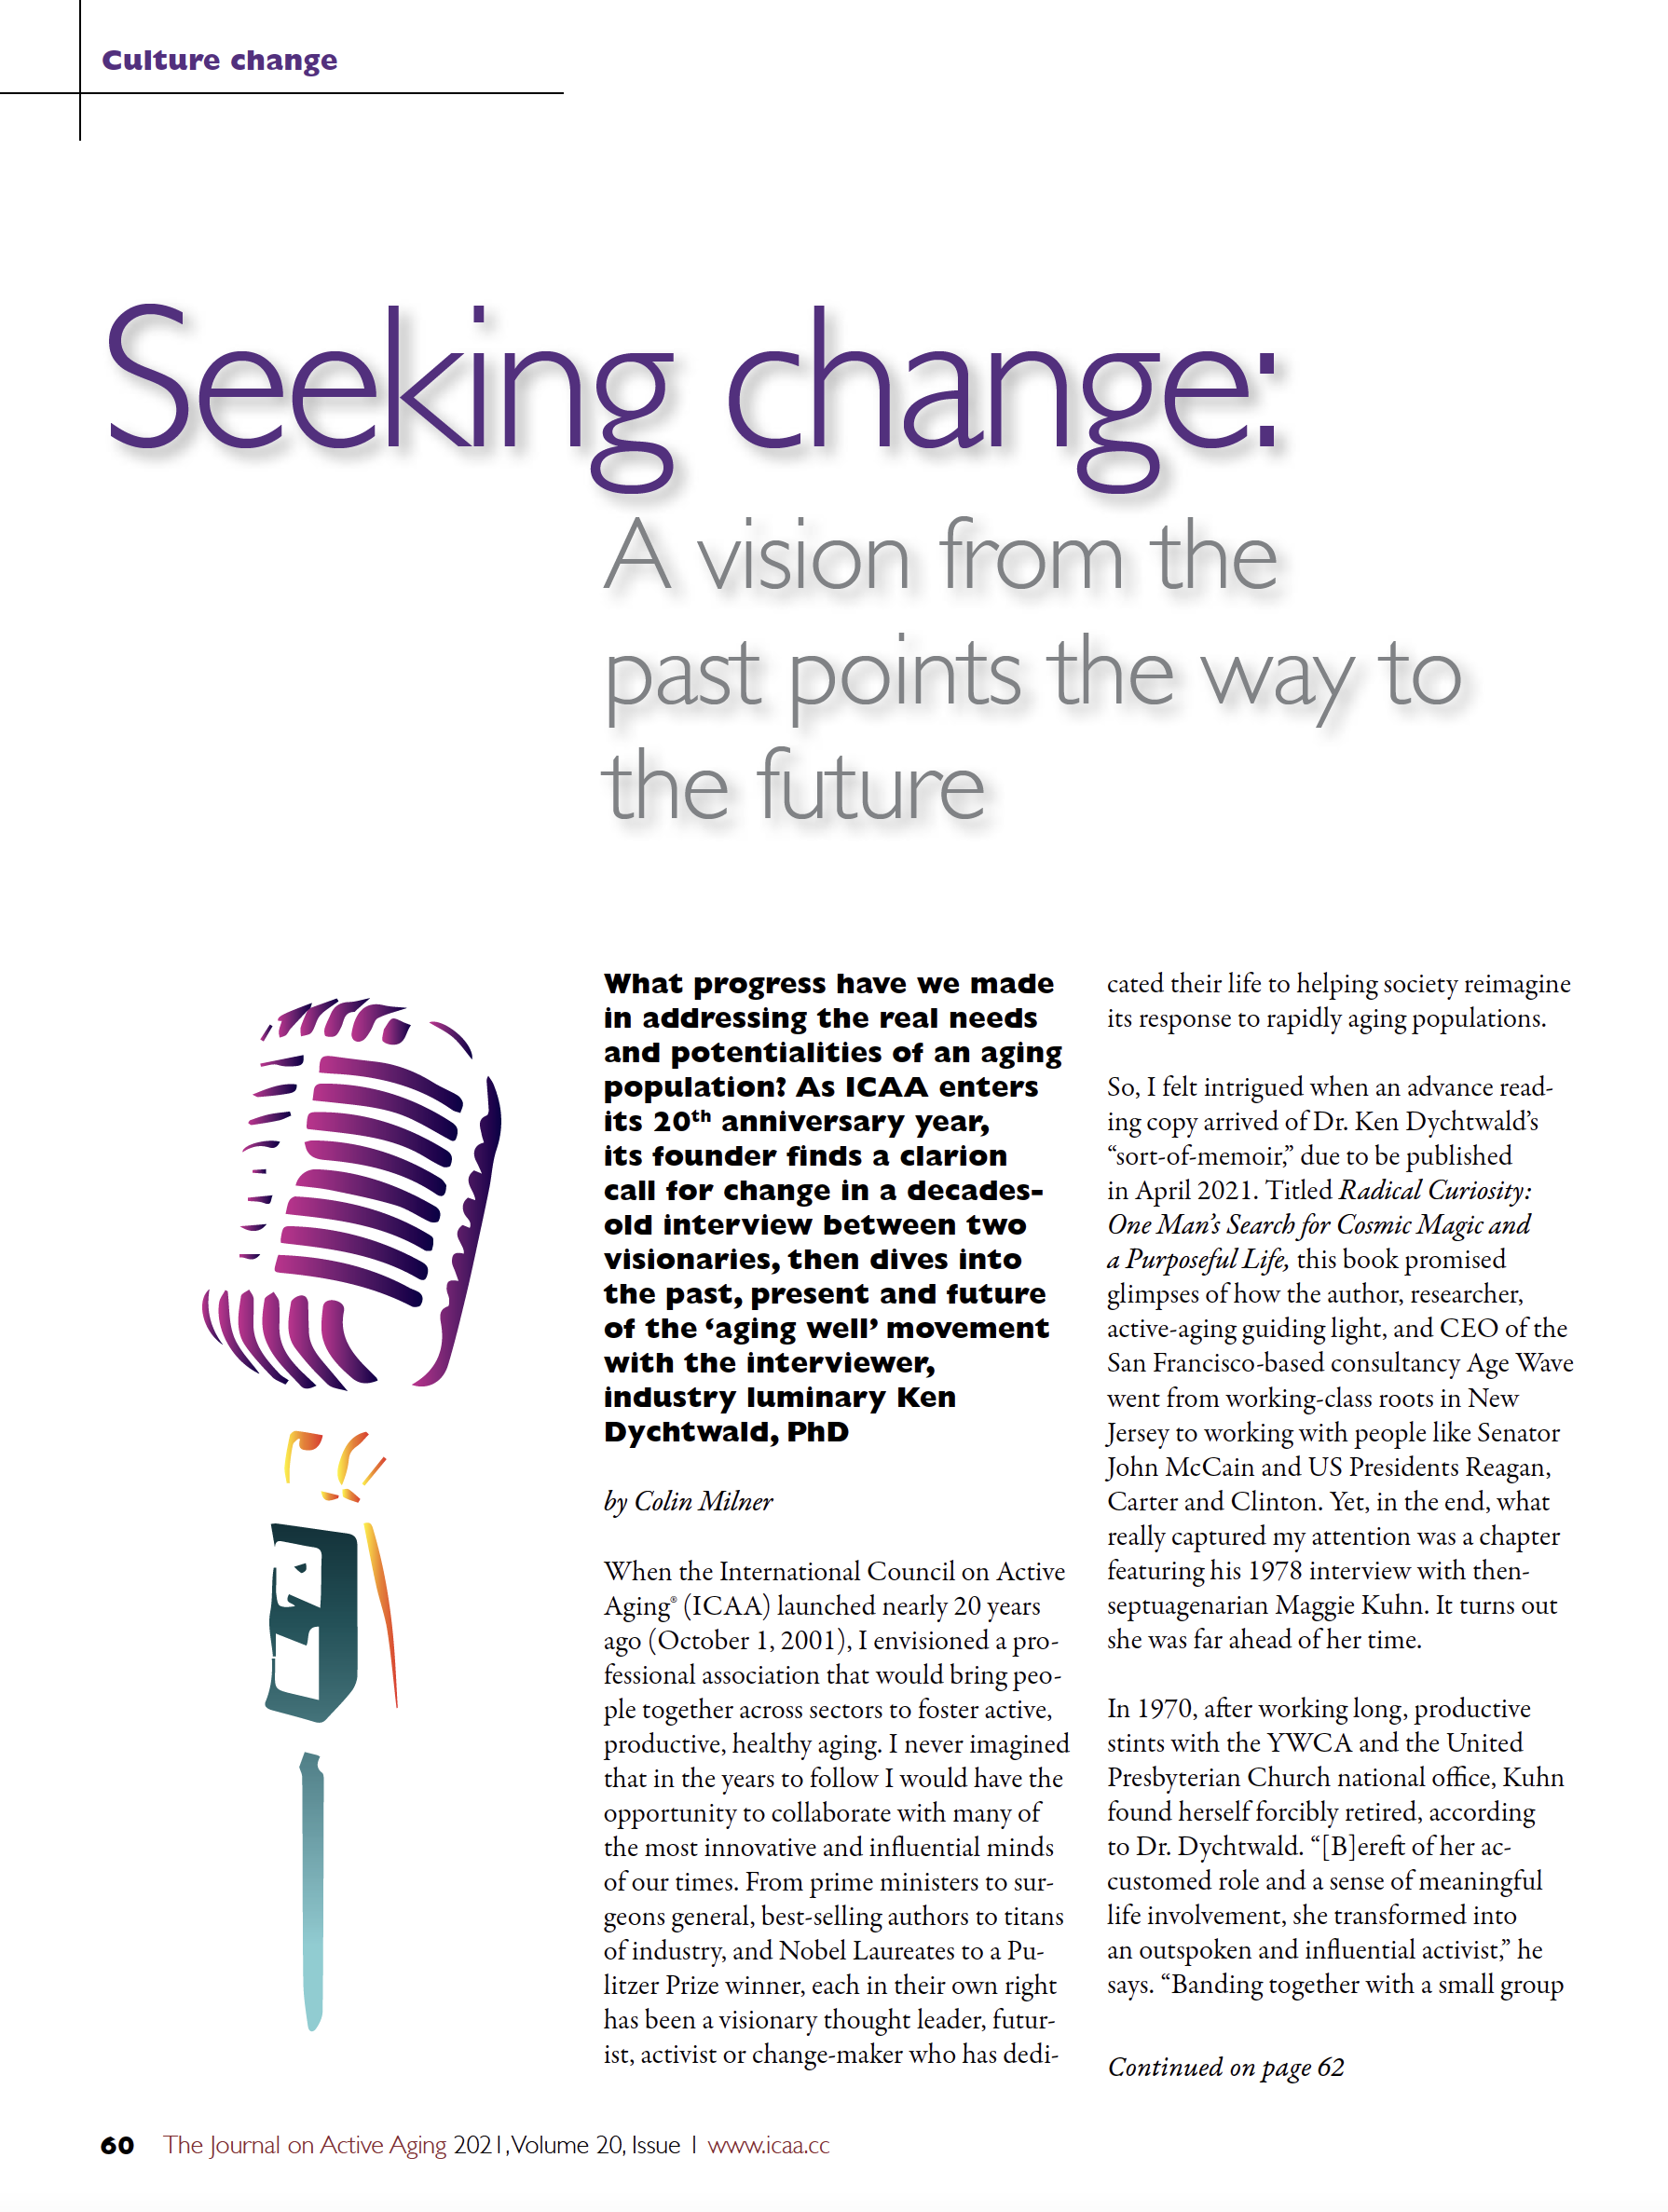 Seeking change: A vision from the past points the way to the future